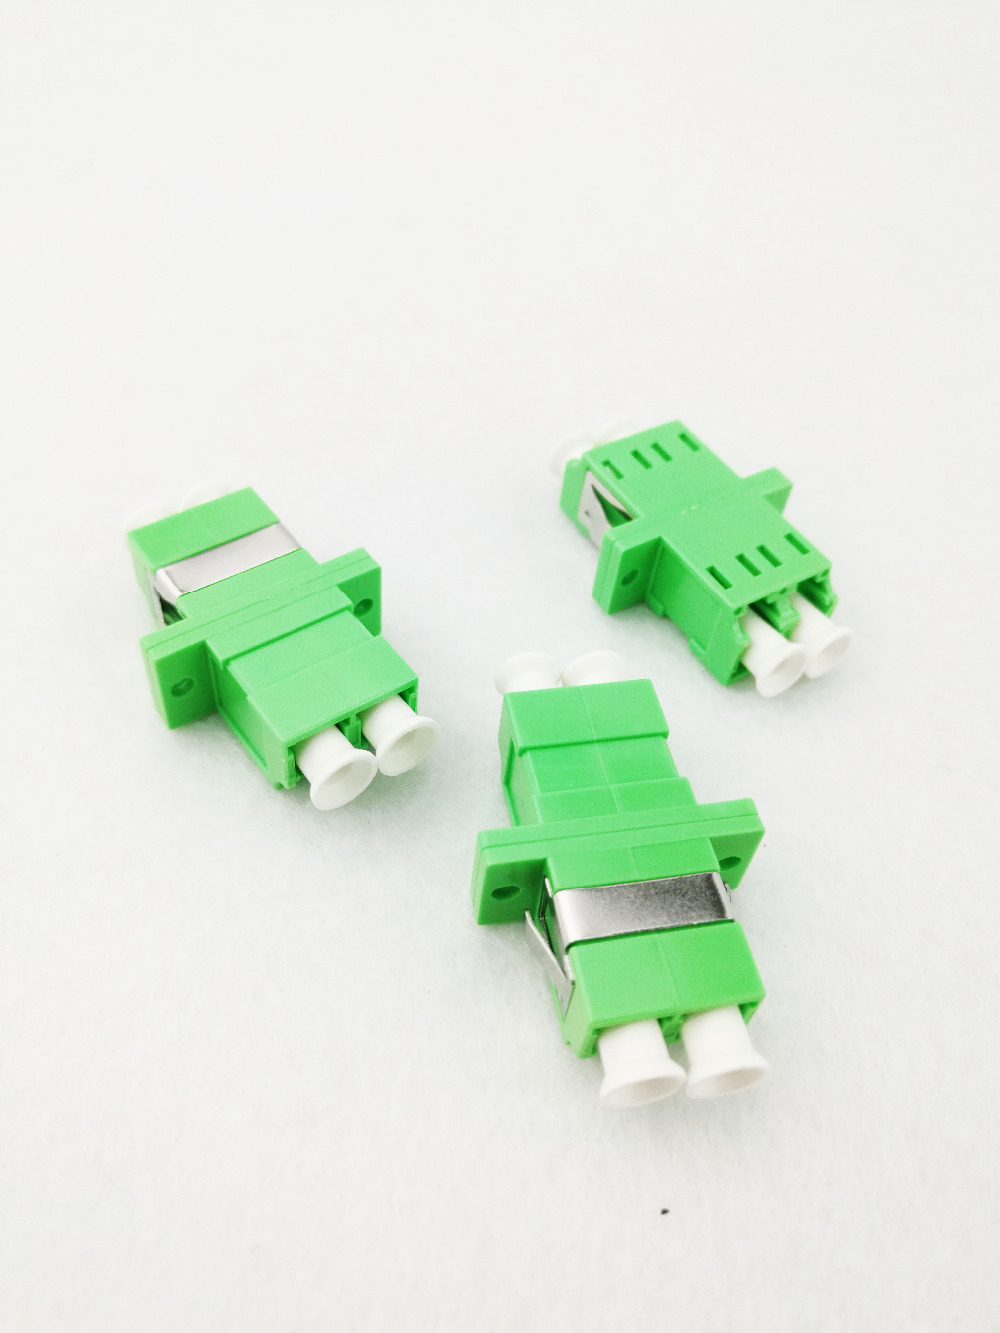 100pcs LC-APC SM DX Fiber coupler Adaptor LC APC connector Fiber Optical flange Adapter100pcs LC-APC SM DX Fiber coupler Adaptor LC APC connector Fiber Optical flange Adapter